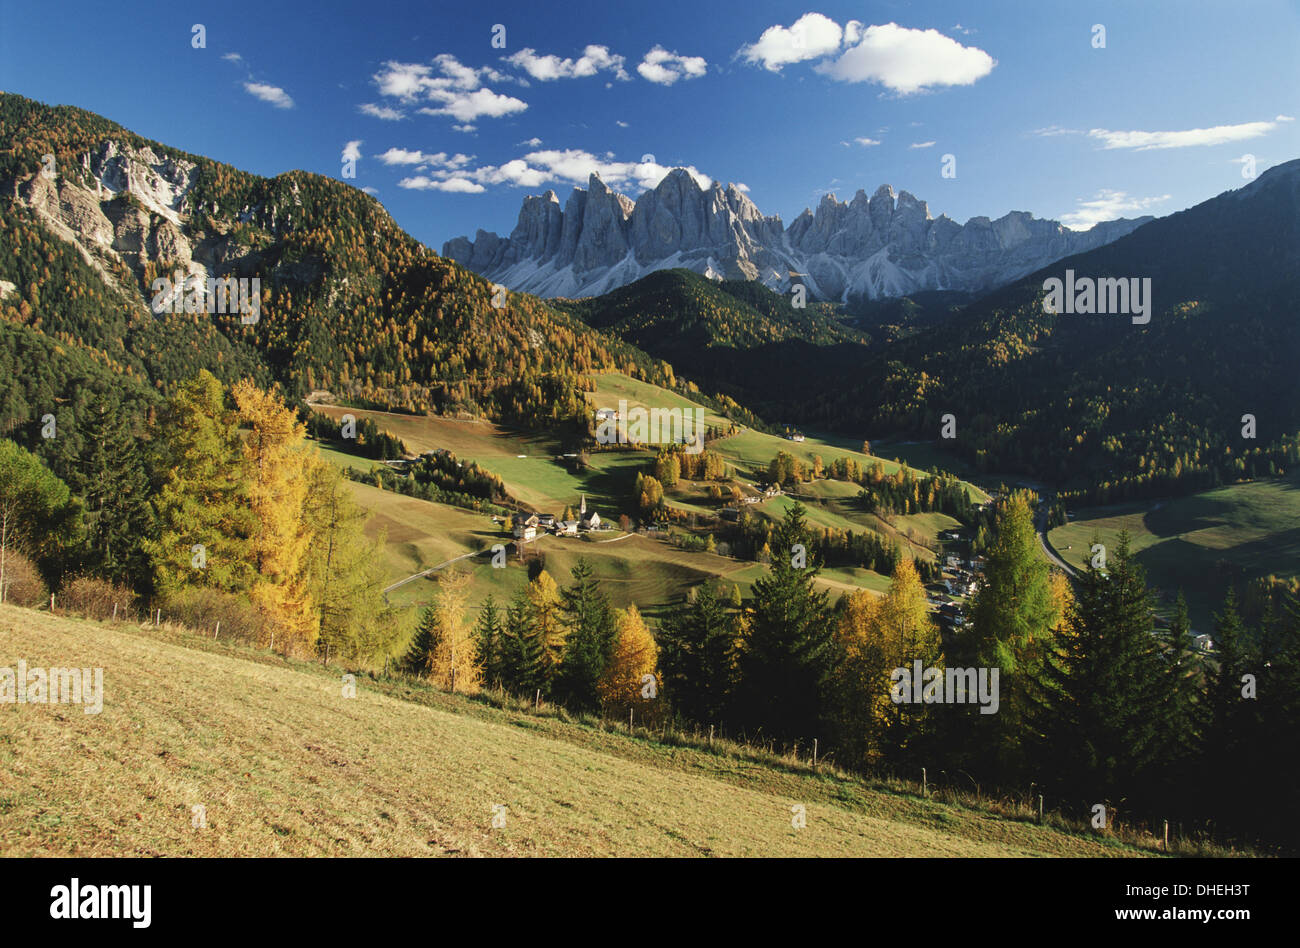 Italy, Cortina, Dolomites, view from over rolling landscape - Stock Image